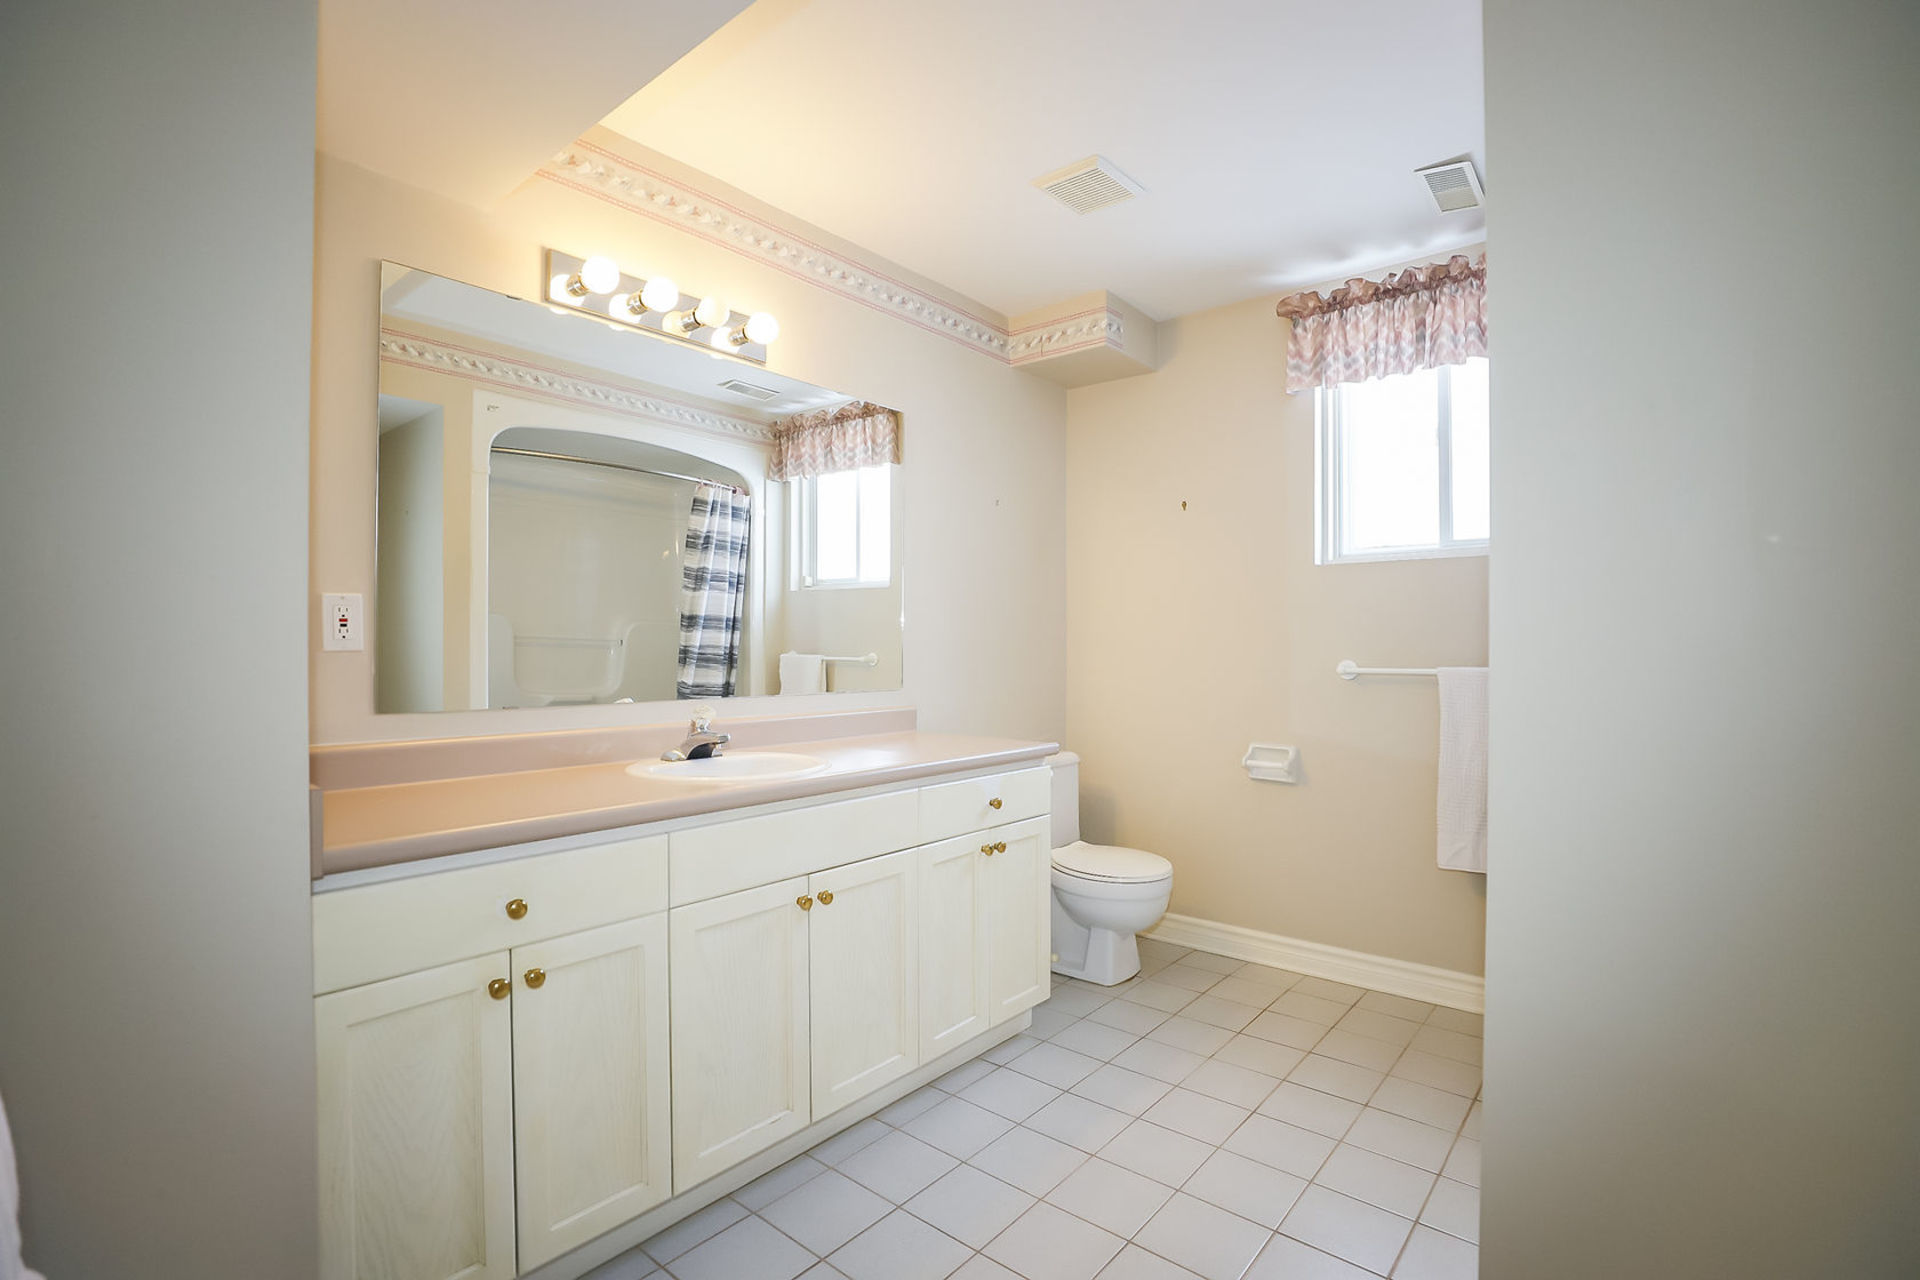 virtual-tour-292122-37-1 at 47 Colonial Cresent, Grimsby